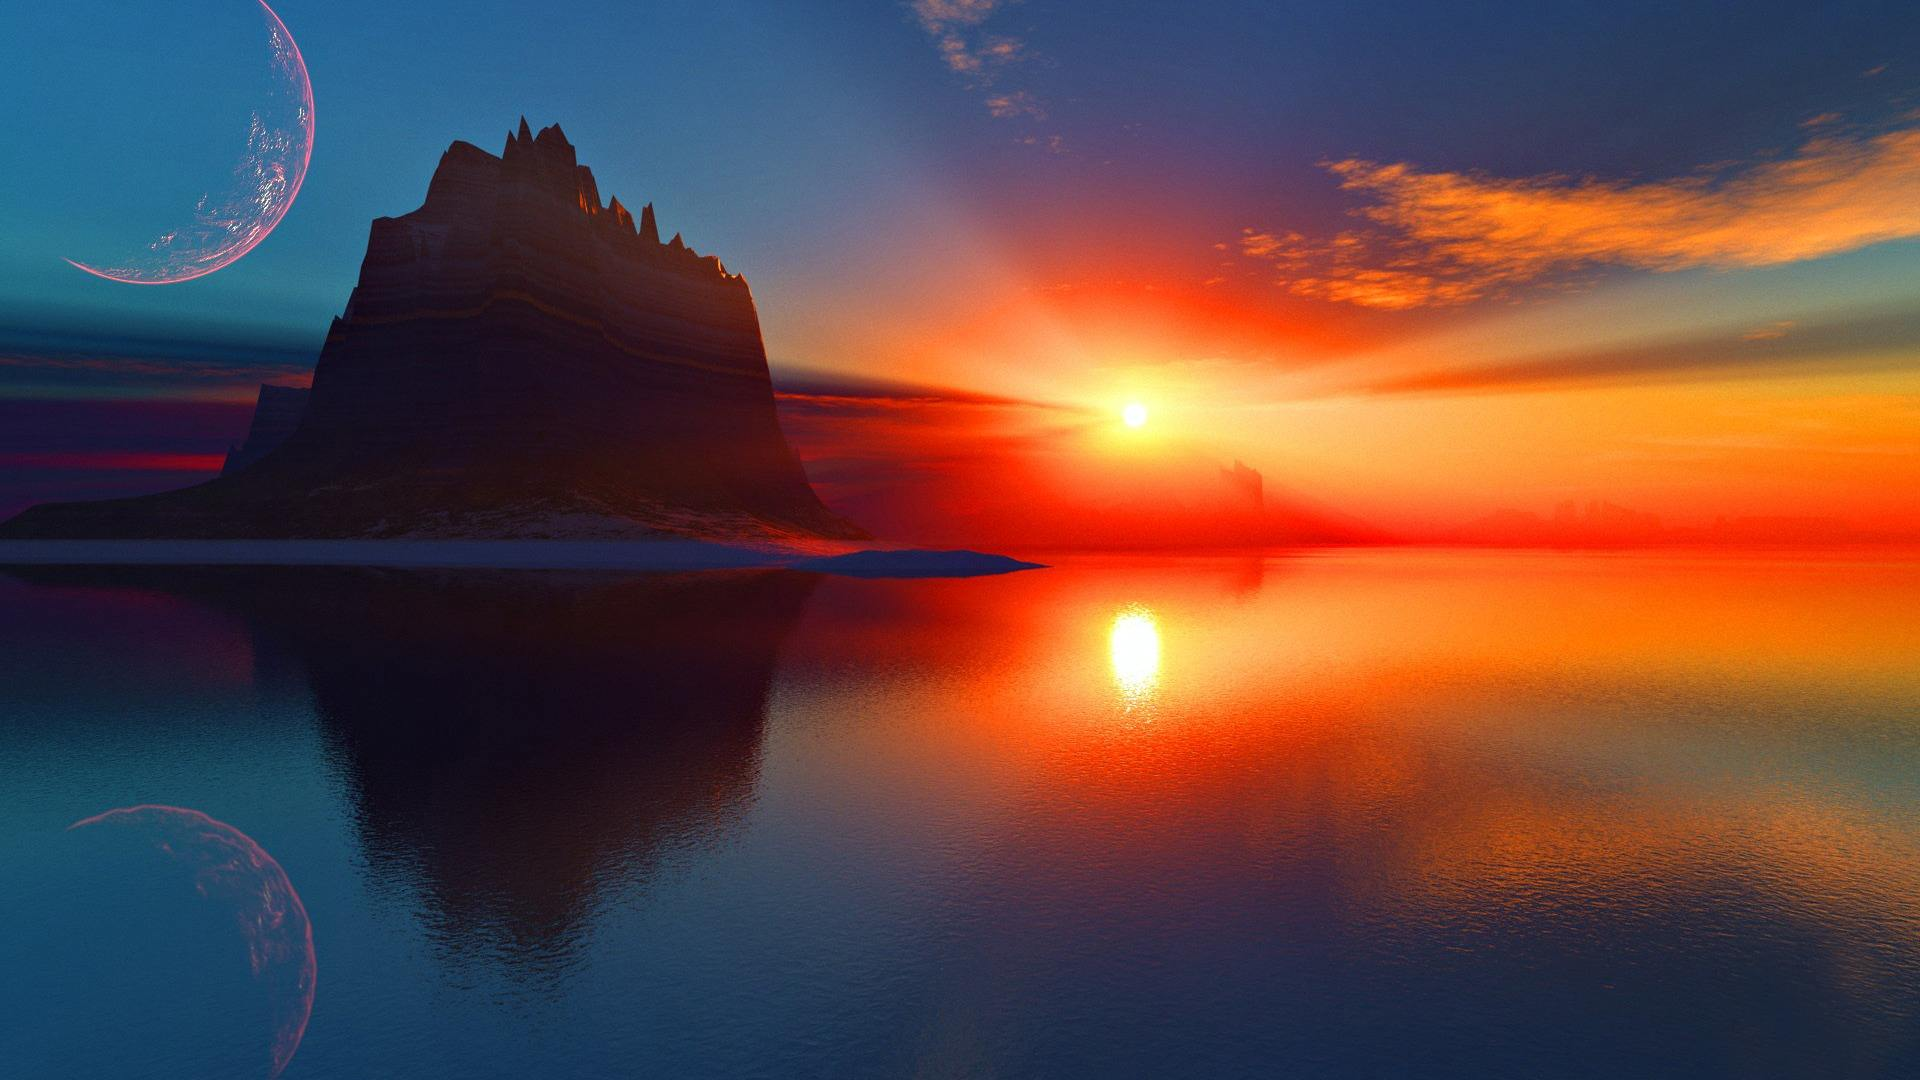 sunset, sunset 3d, sunset backgrounds and sunset hd